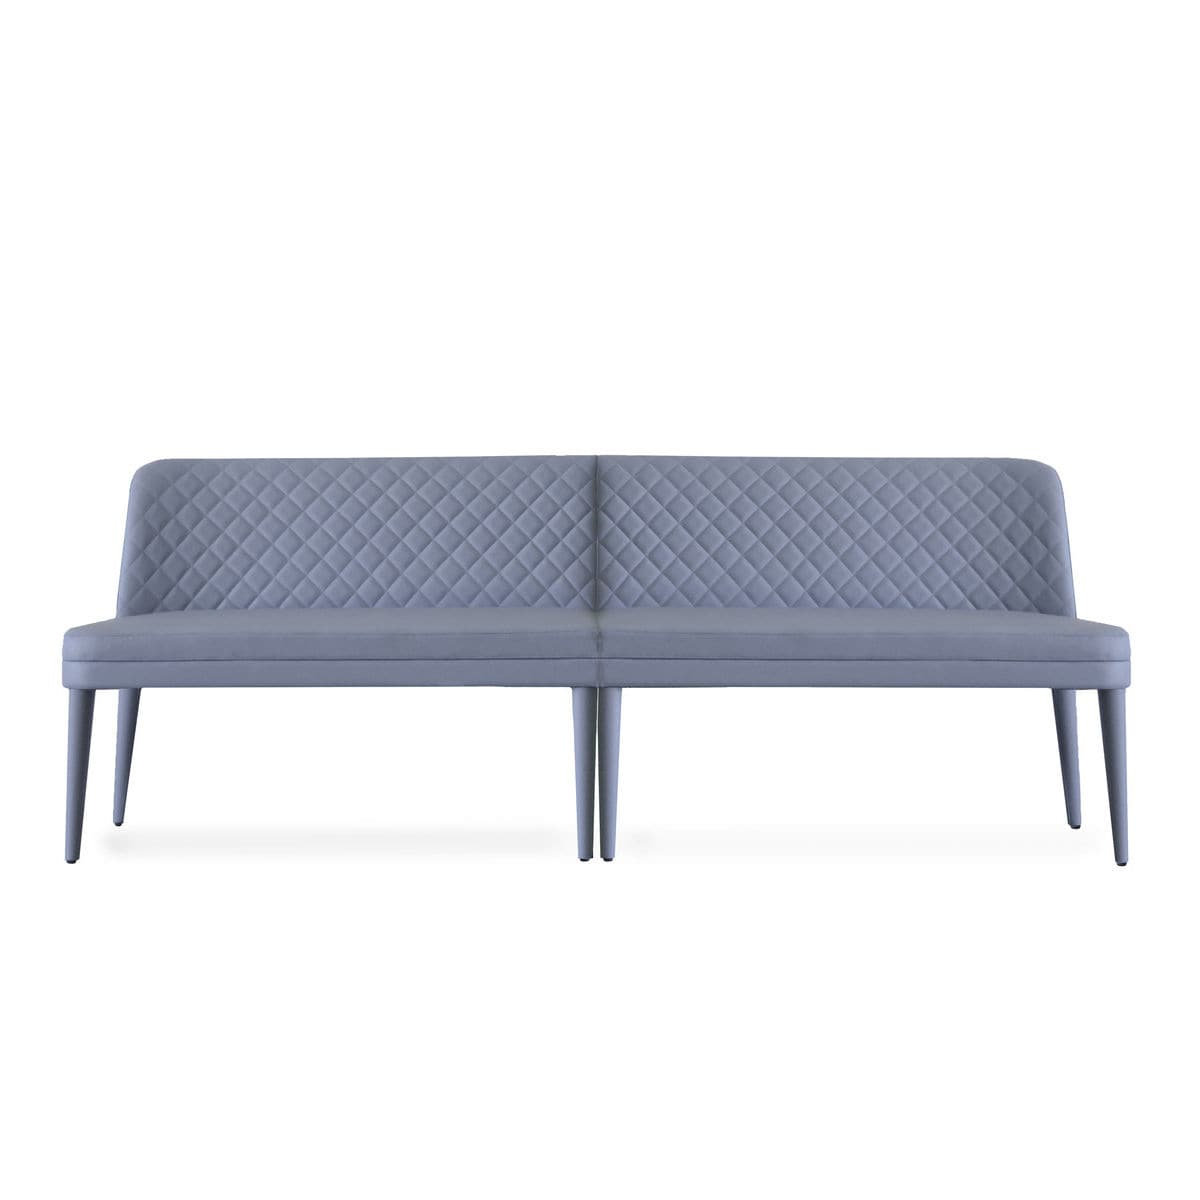 Excellent Contemporary Upholstered Bench Fabric Blue Unemploymentrelief Wooden Chair Designs For Living Room Unemploymentrelieforg